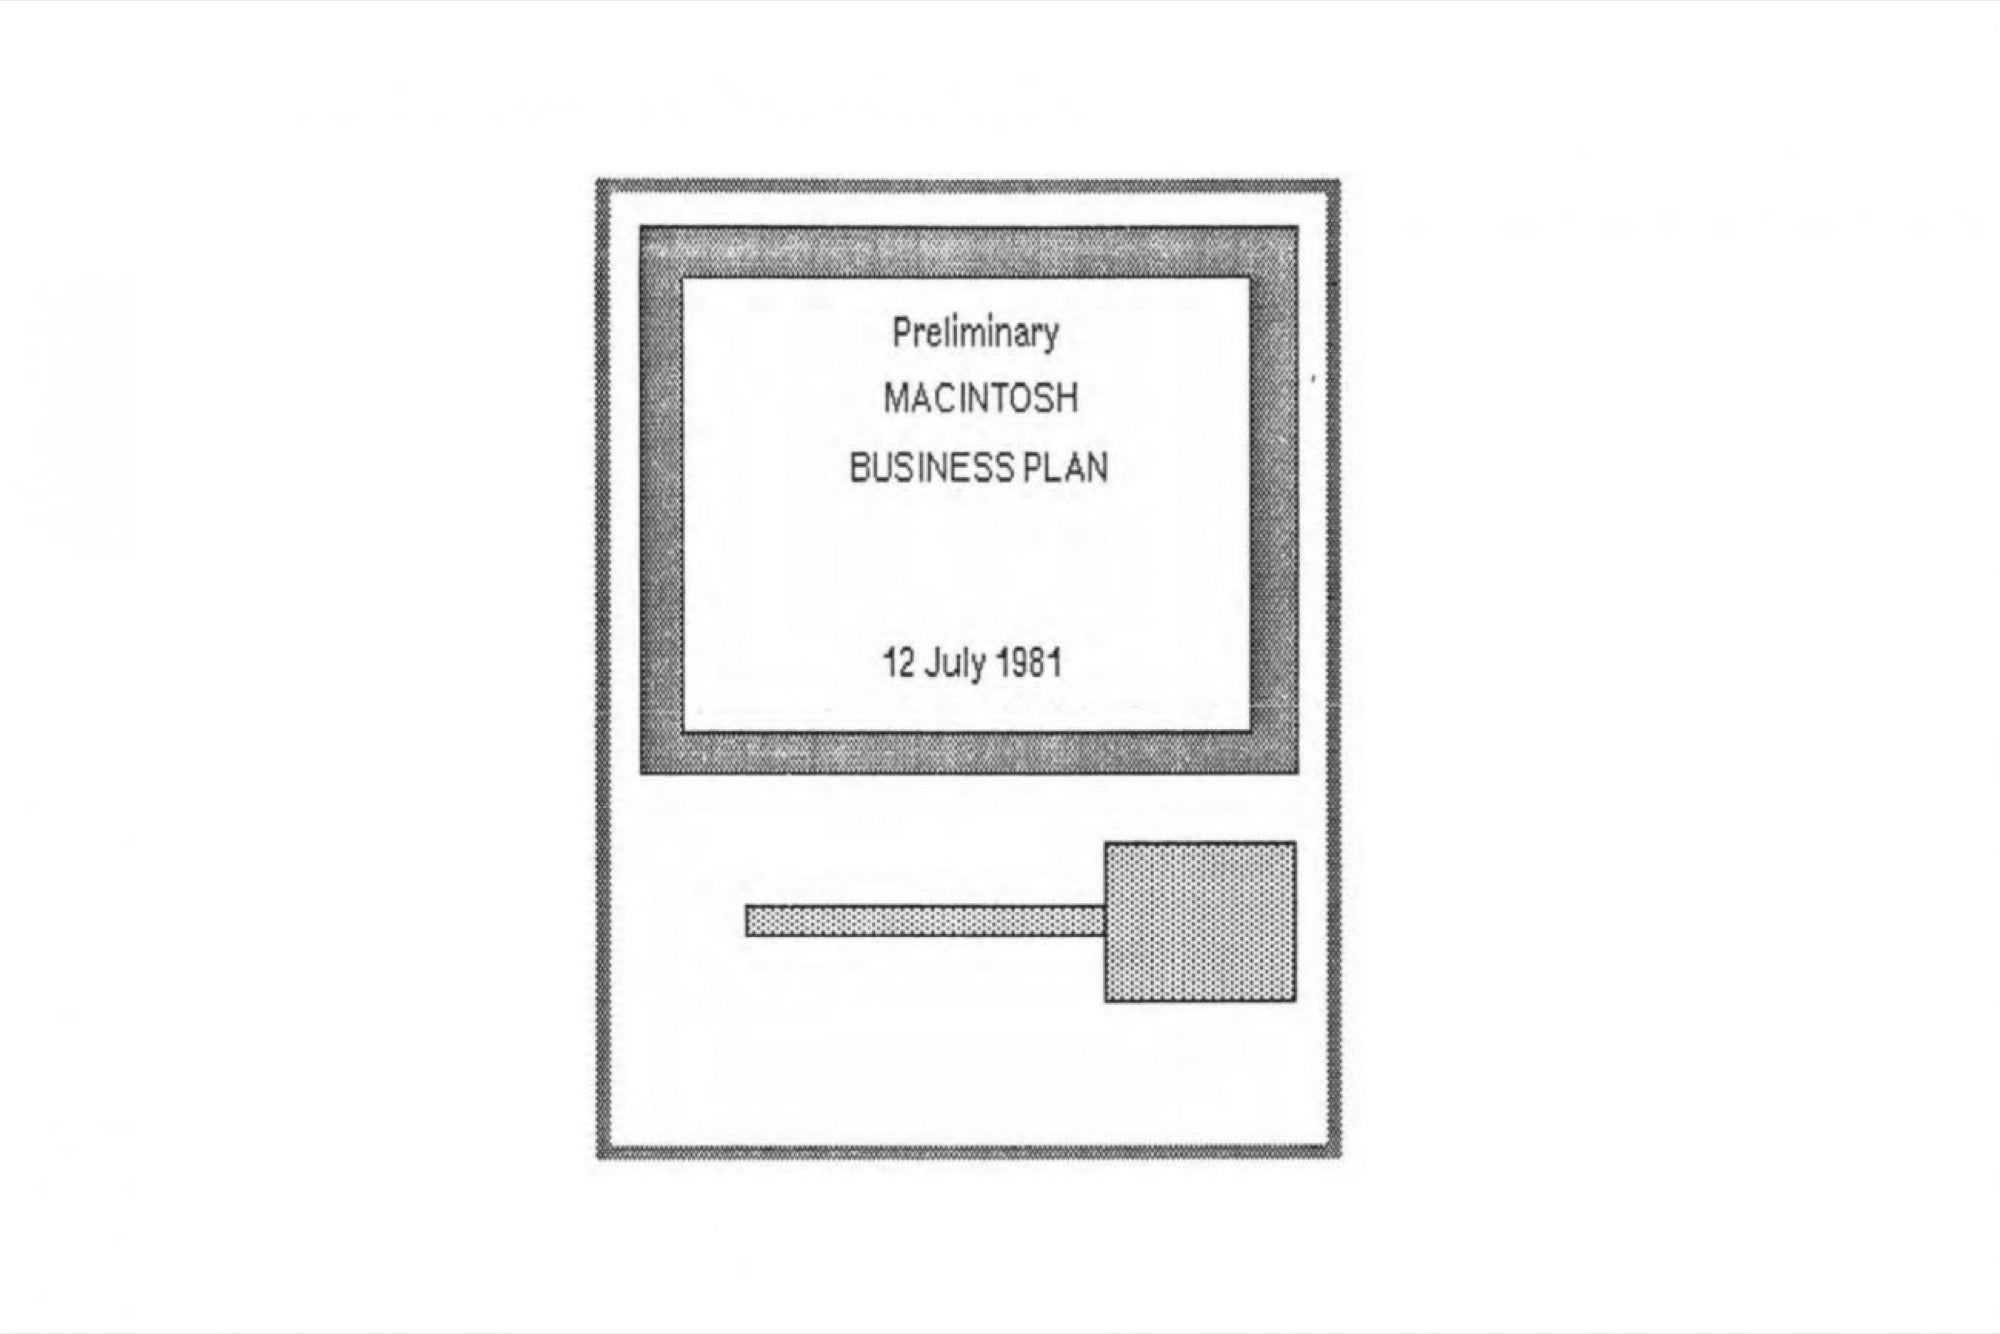 Need a Business Plan Template? Here Is Apple's 1981 Plan for